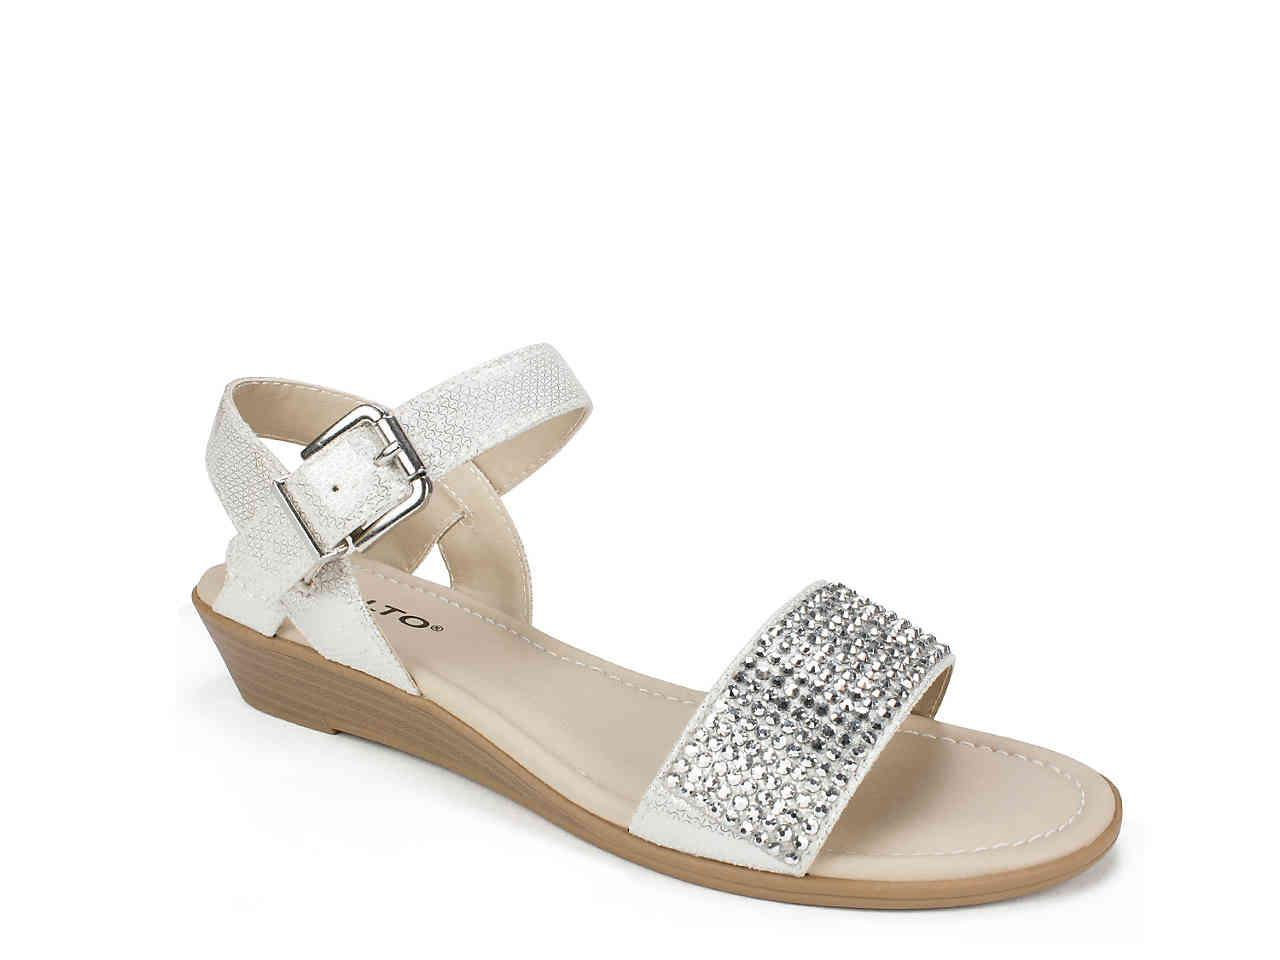 3a7f81ff11c Lyst - Rialto Genette Wedge Sandal in Metallic - Save 18.51851851851852%